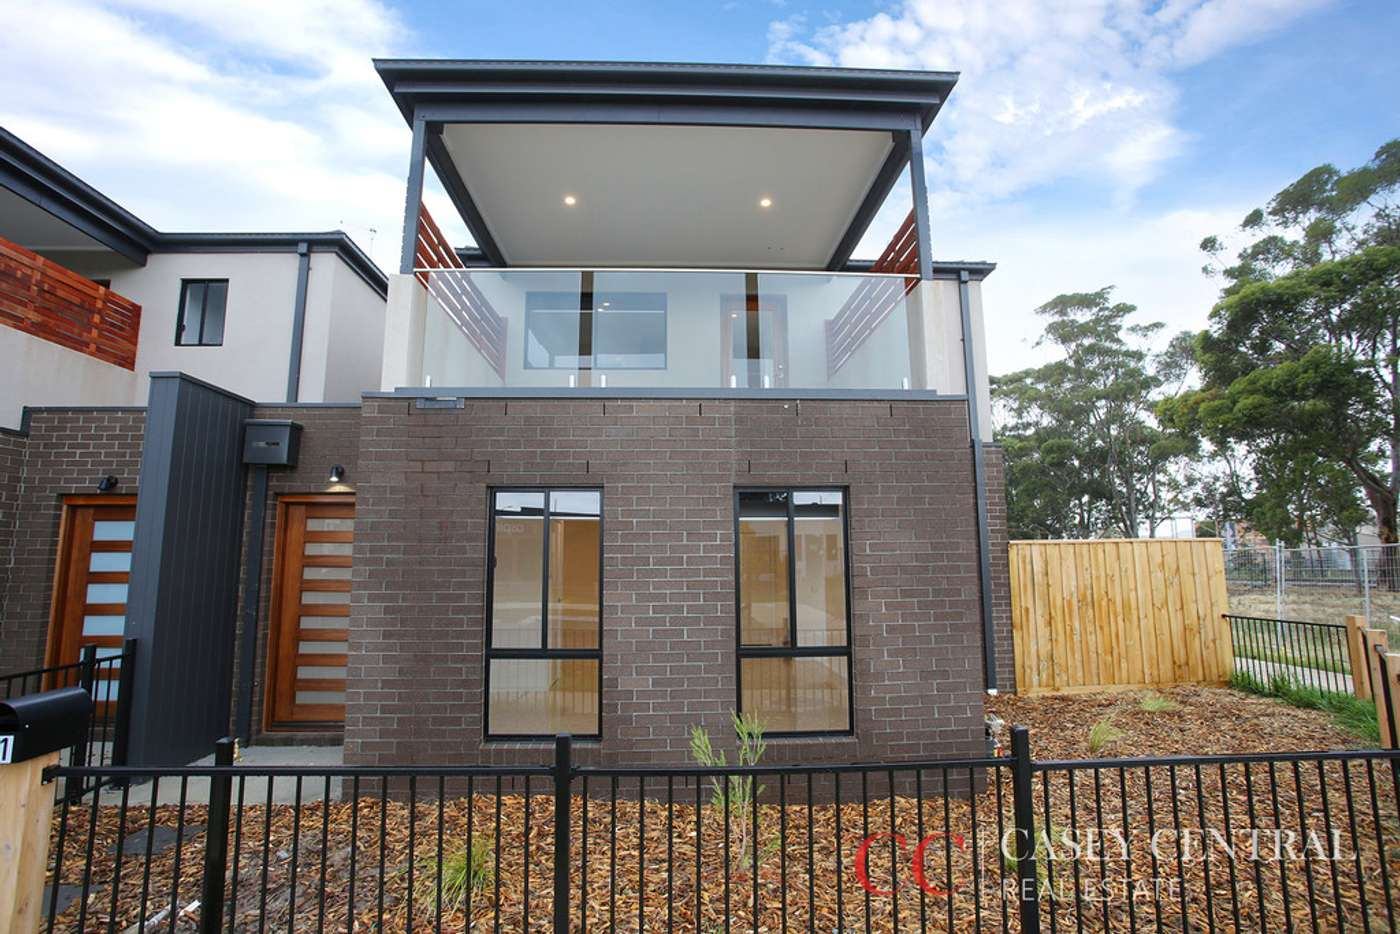 Main view of Homely house listing, 21 Station Street, Pakenham VIC 3810